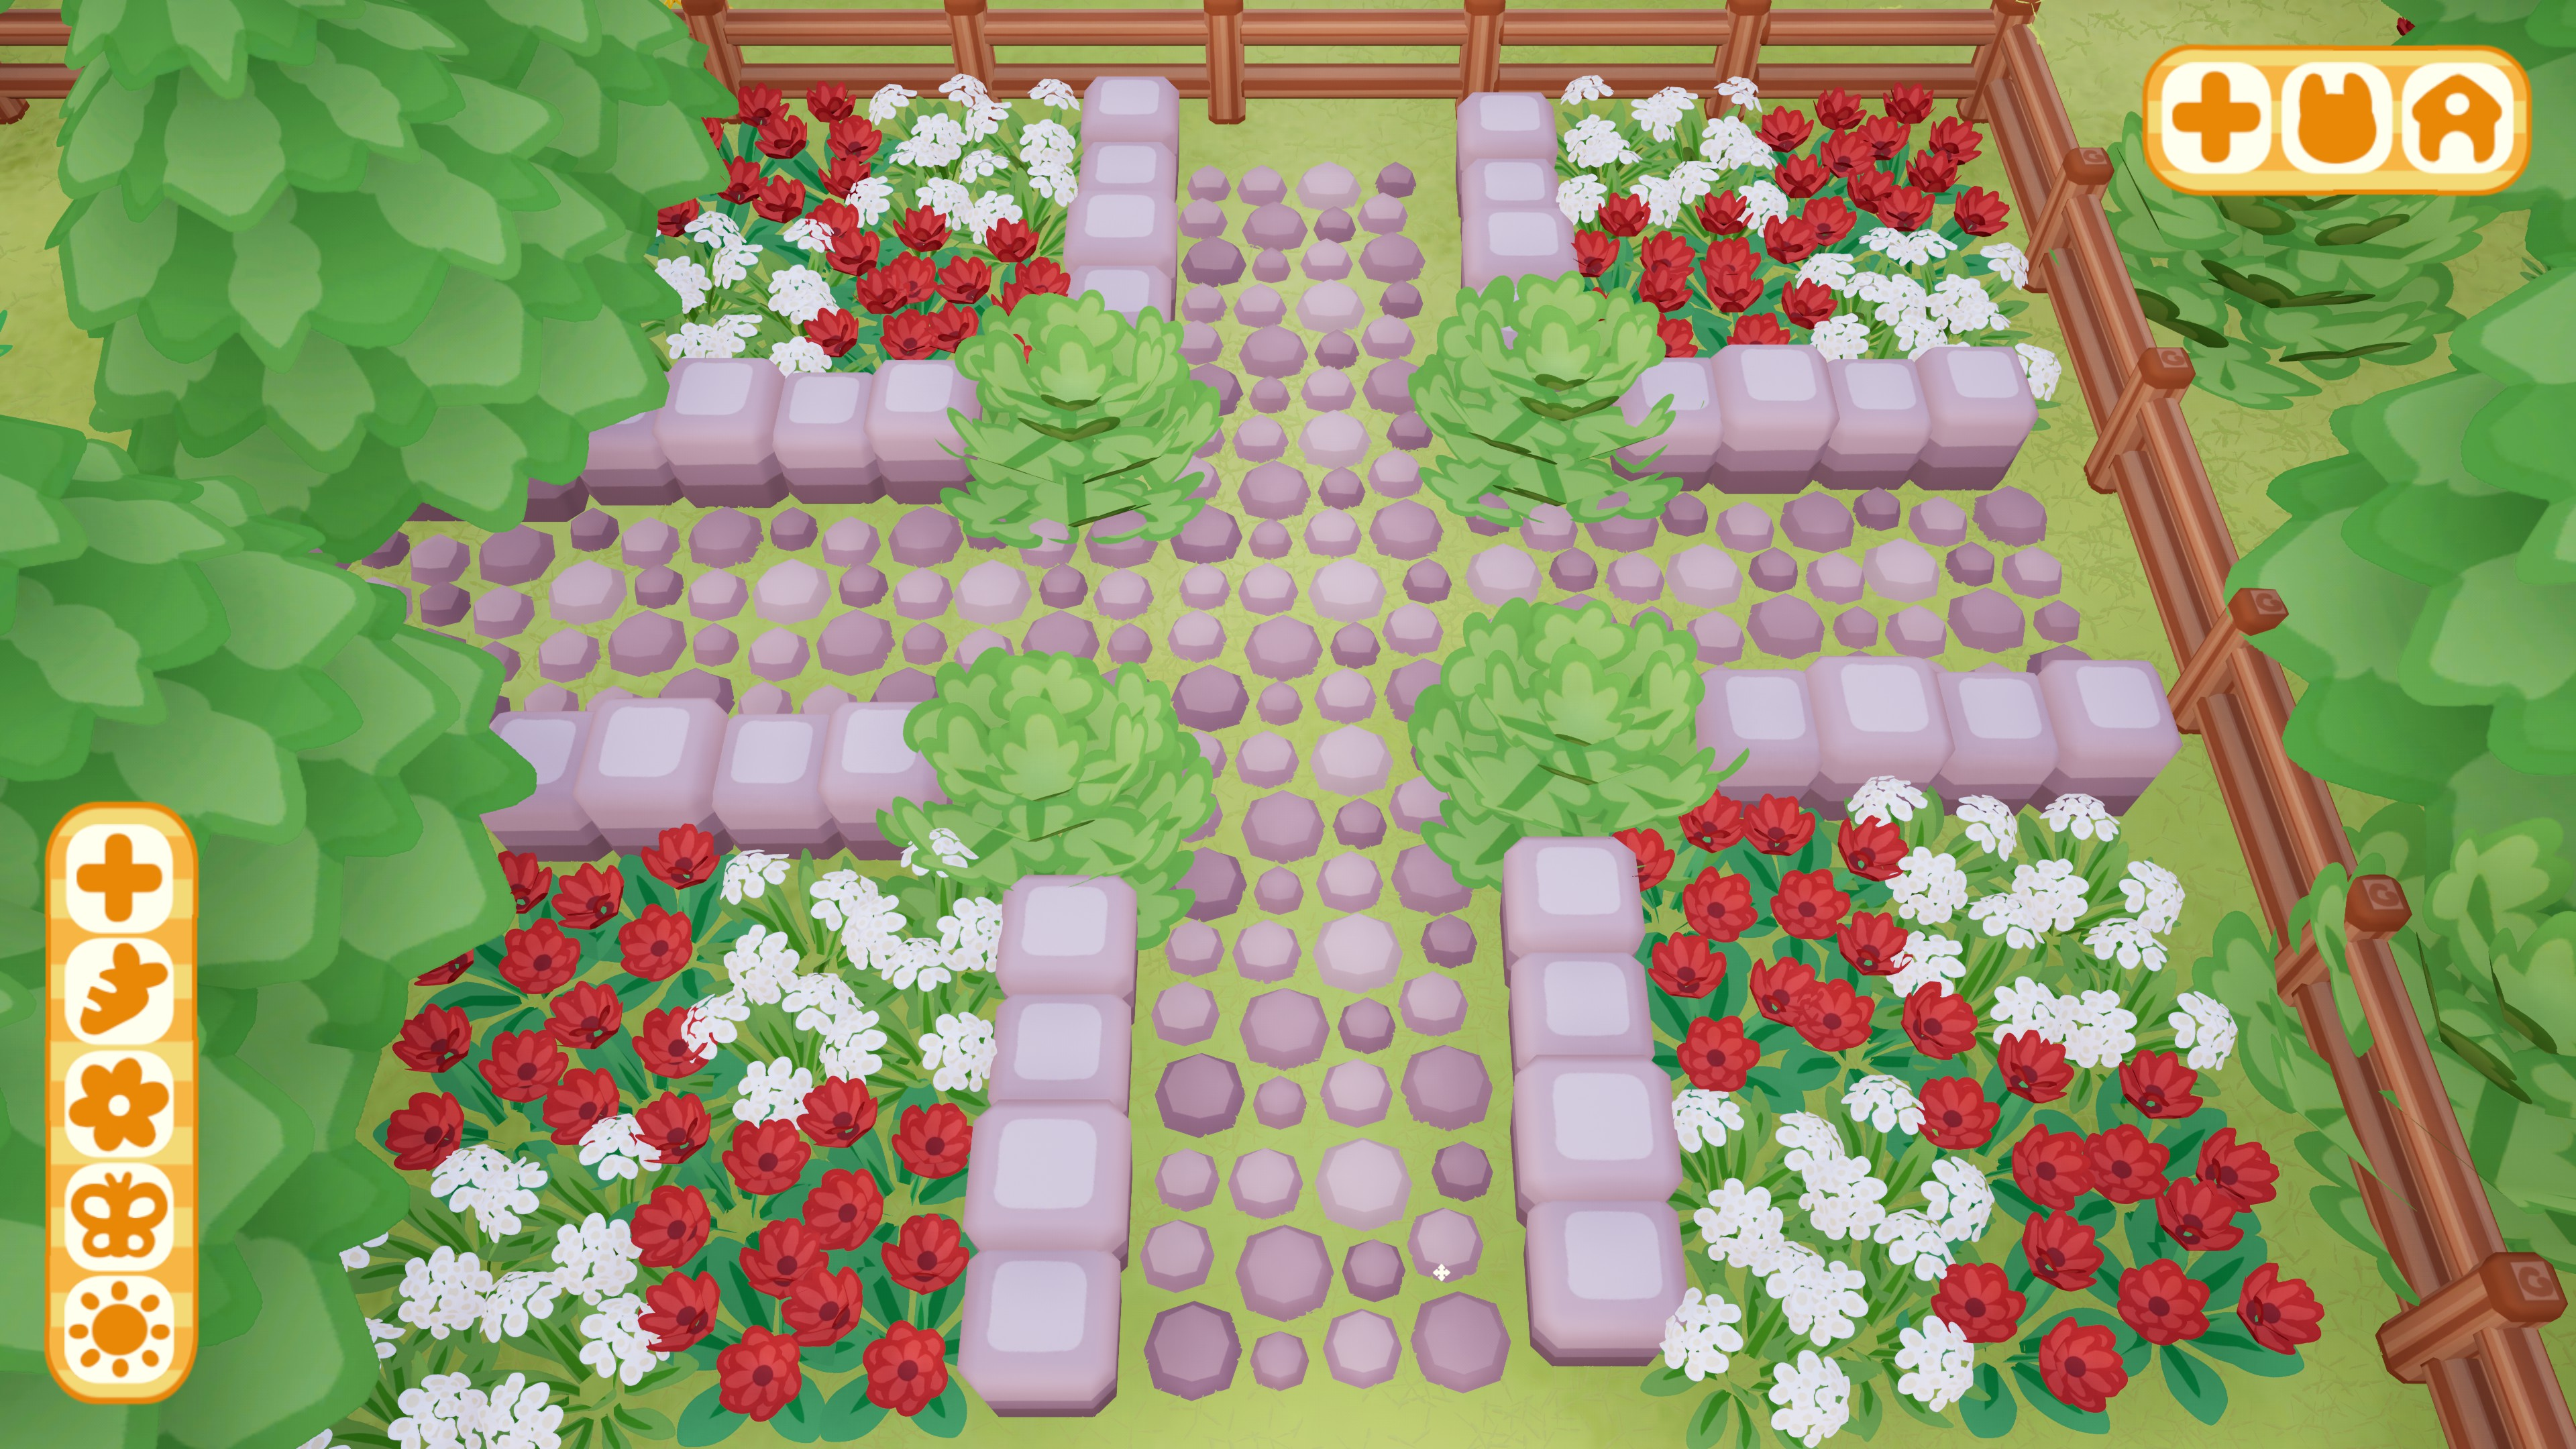 Bunny Park. A dense garden of red and white flowers with stone paths and walls